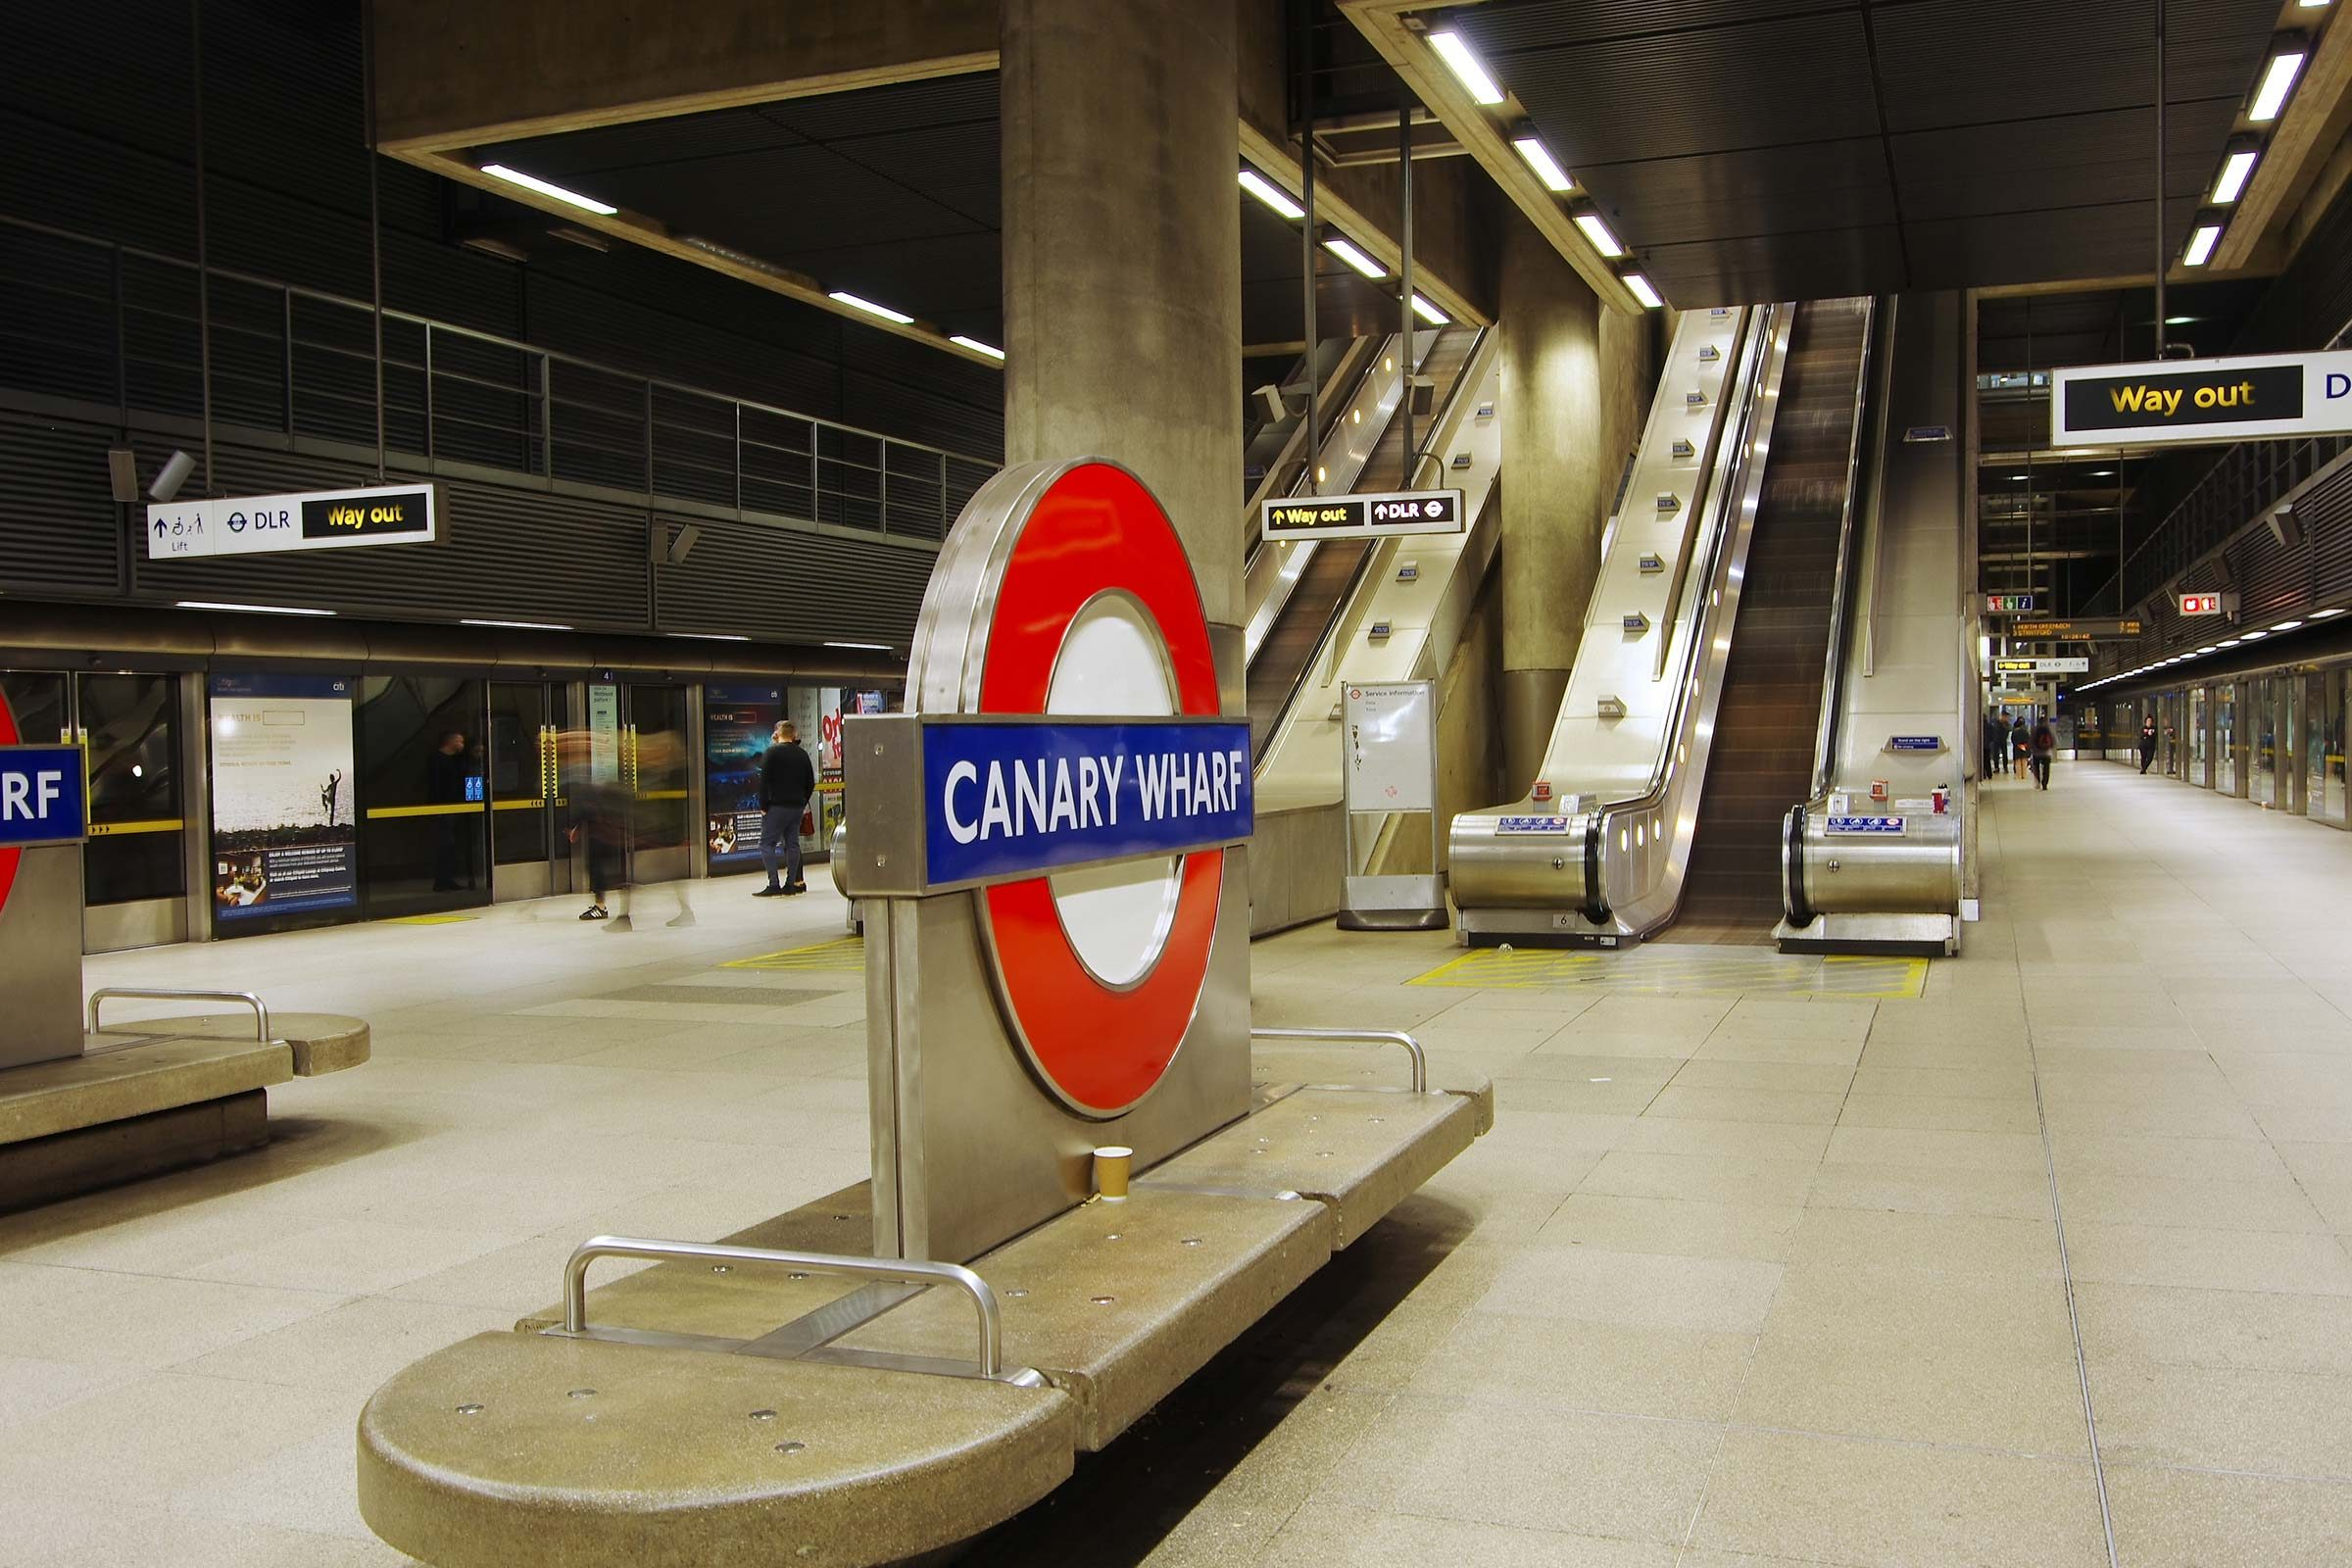 The underground station of Canary Wharf. Canary Wharf is a new directional district built on the old docks.